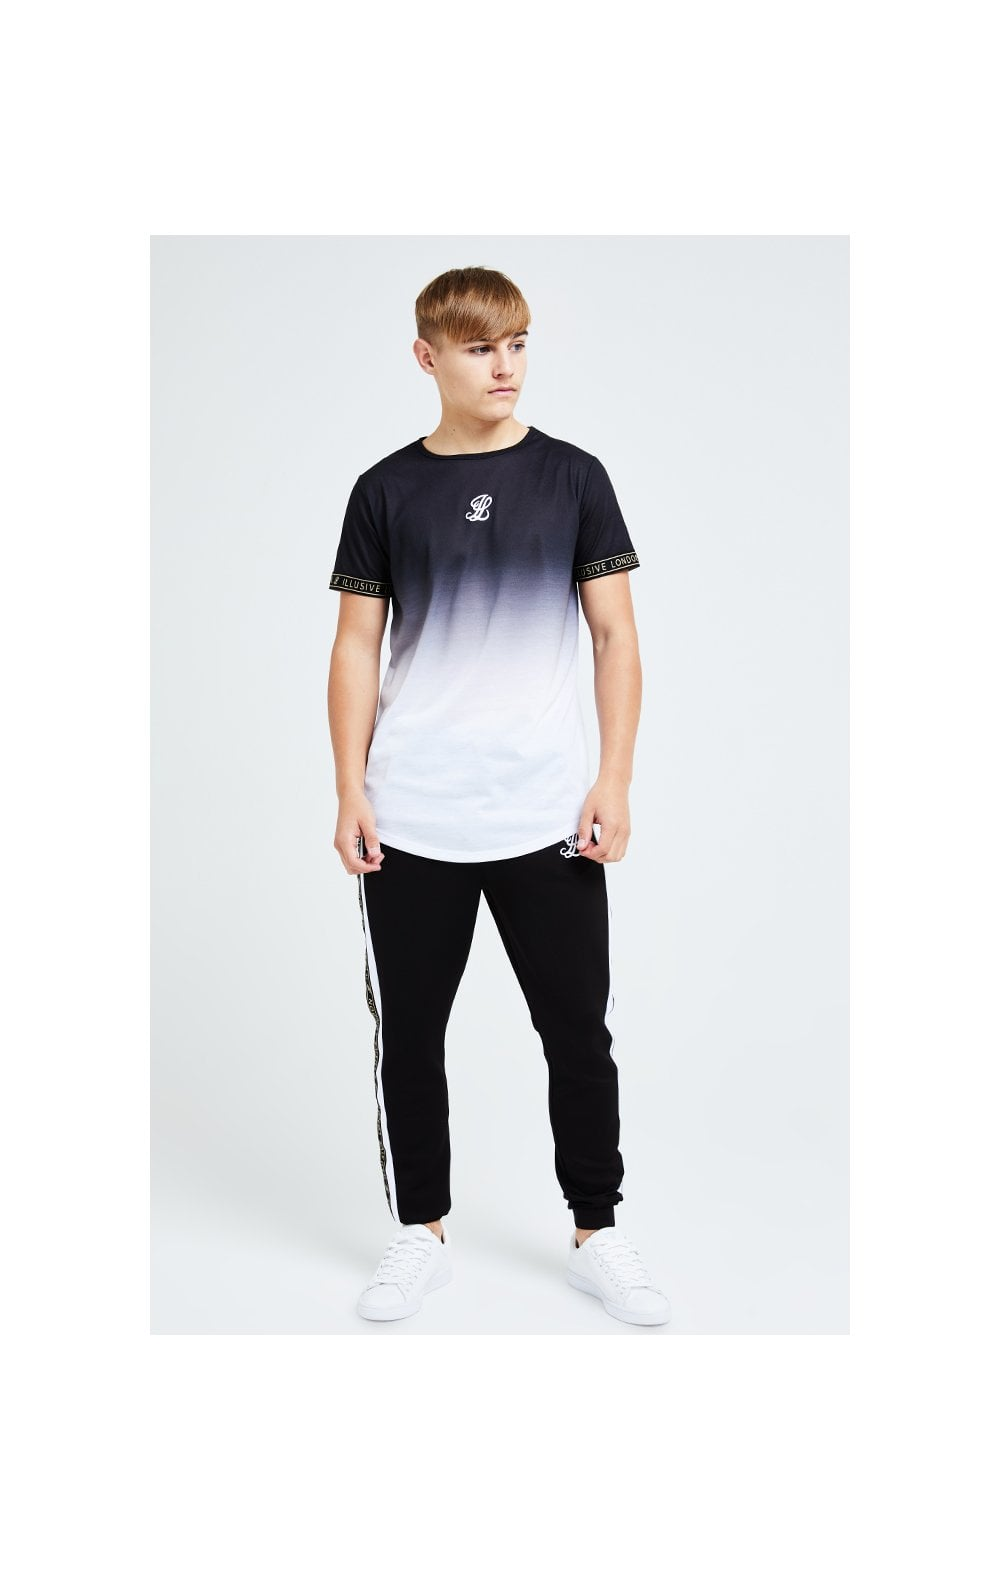 Illusive London Diverge Fade Tech Tee - Black Gold & White (2)